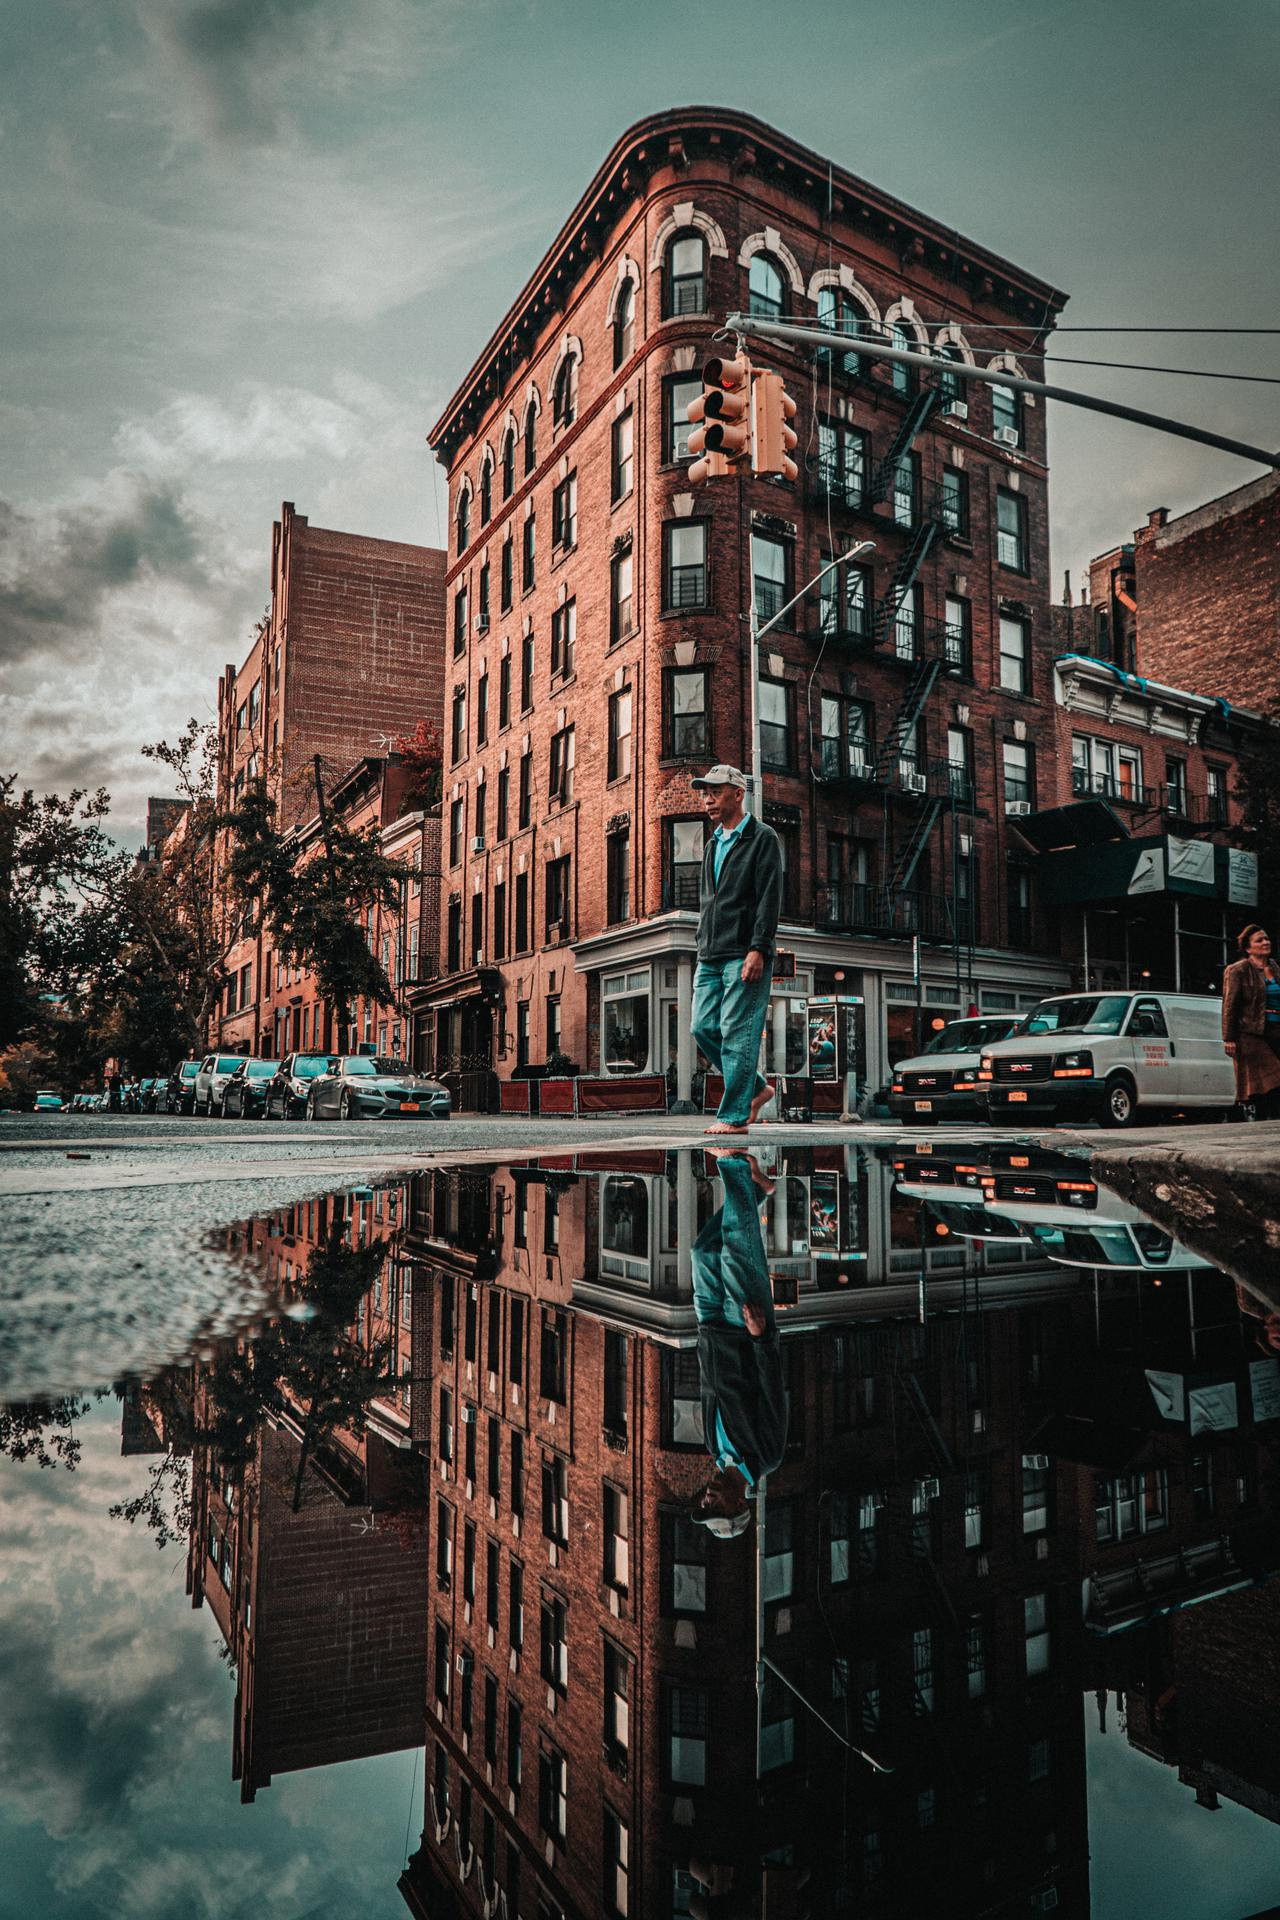 Take a walking Mrs. Maisel tour in NYC and experience Greenwich Village in a whole new way.